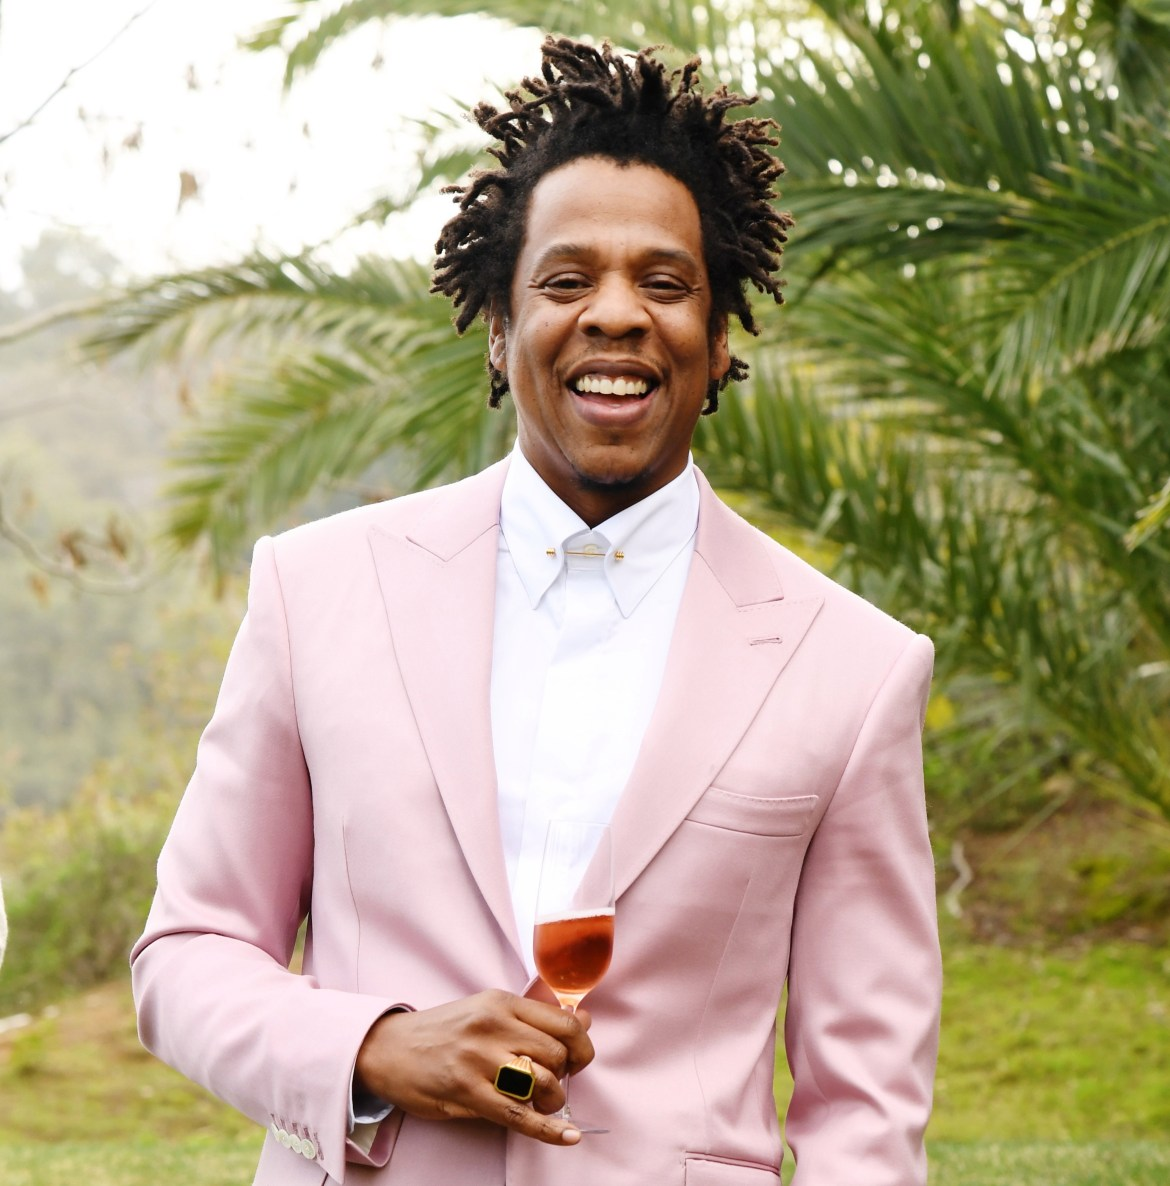 Ace Of Spades is owned by Jay-Z and he unlocked his cellar for Roller